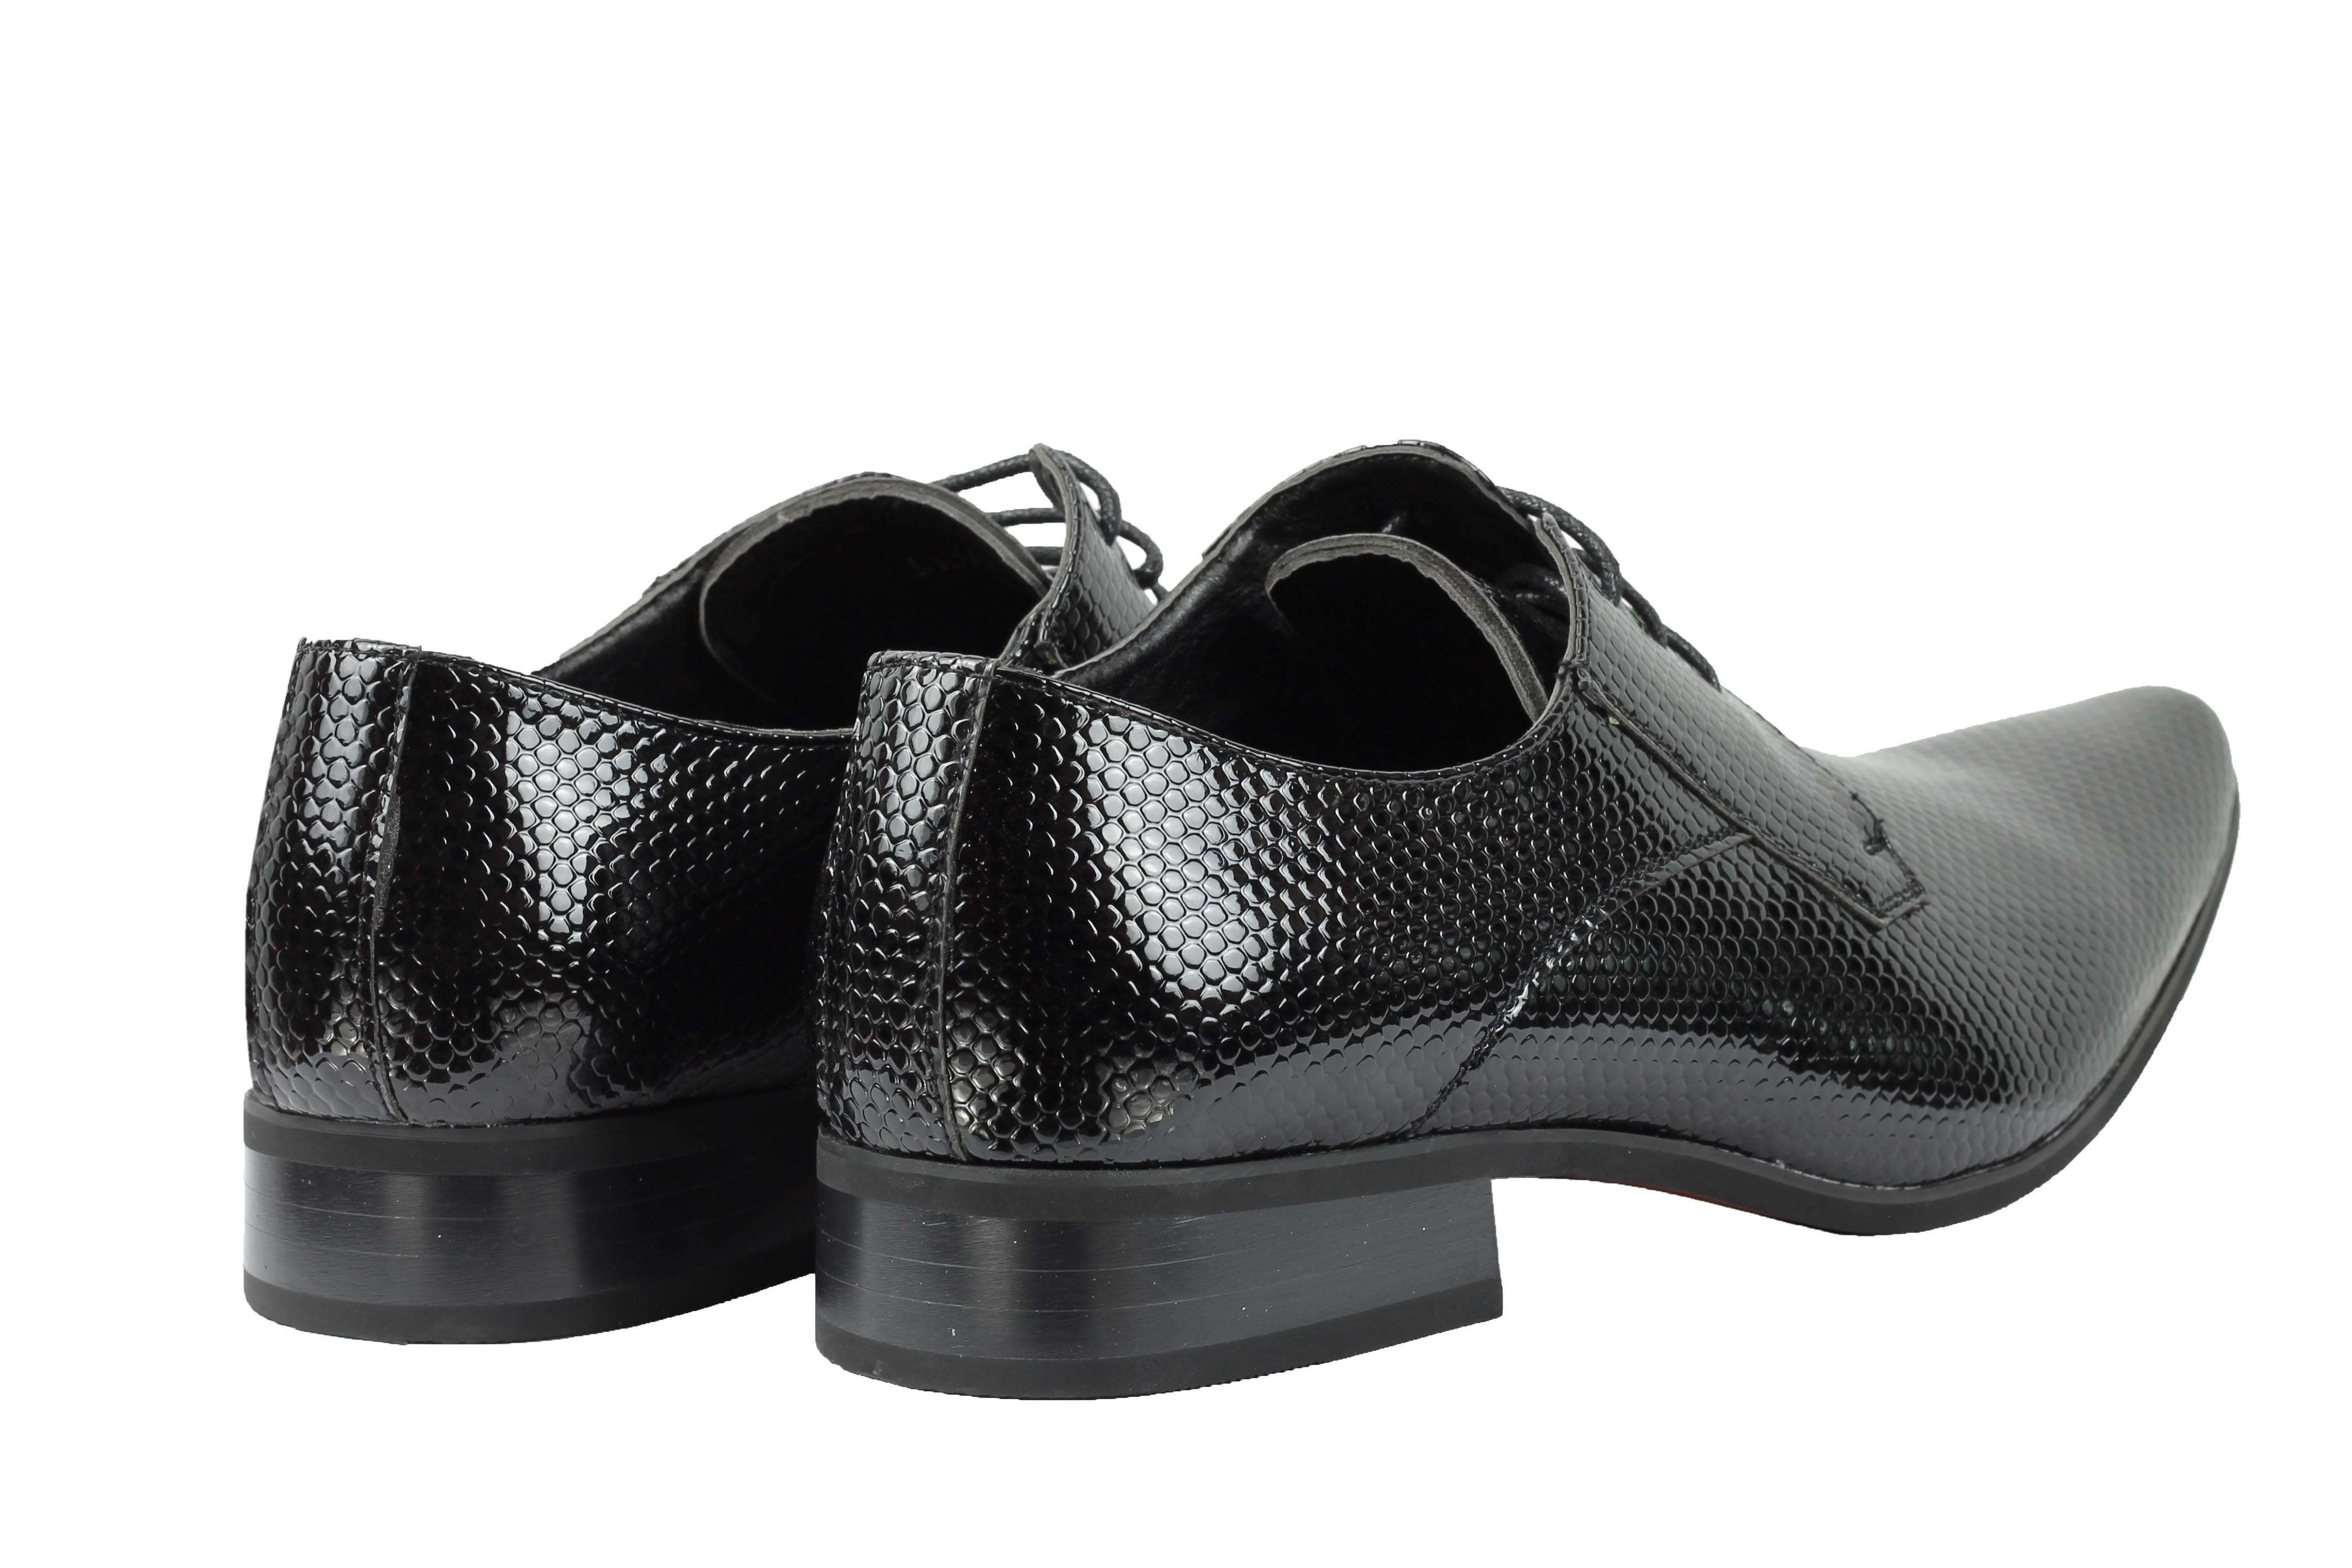 Mens-Leather-Lined-Snake-Skin-Print-Shiny-Patent-Leather-Smart-Party-Retro-Shoes thumbnail 6